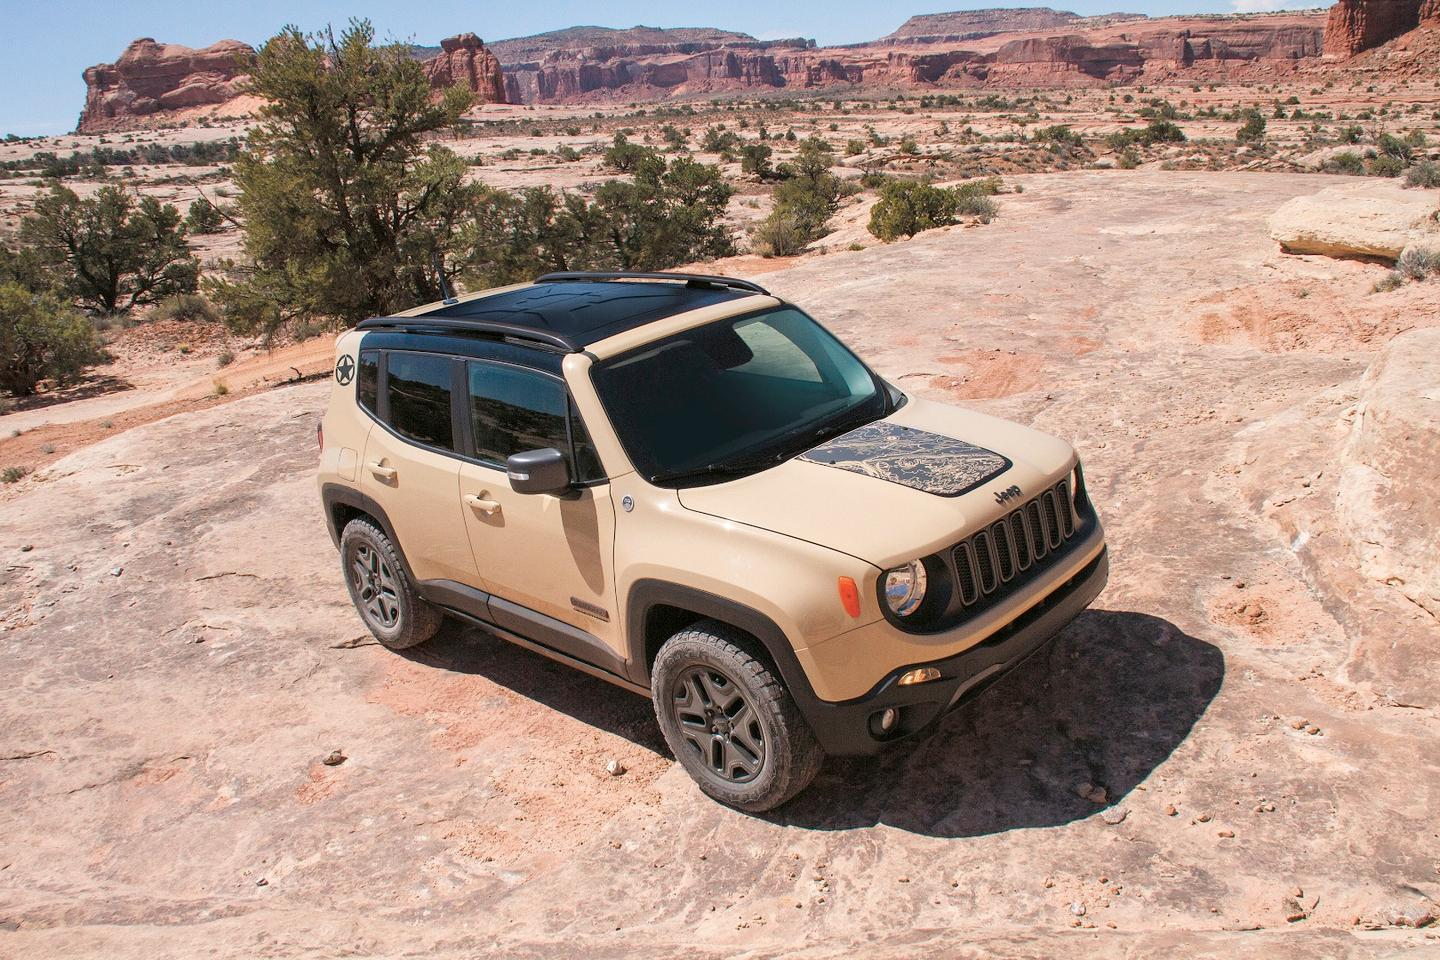 The Renegade Deserthawk will debut at the Los Angeles Auto Show